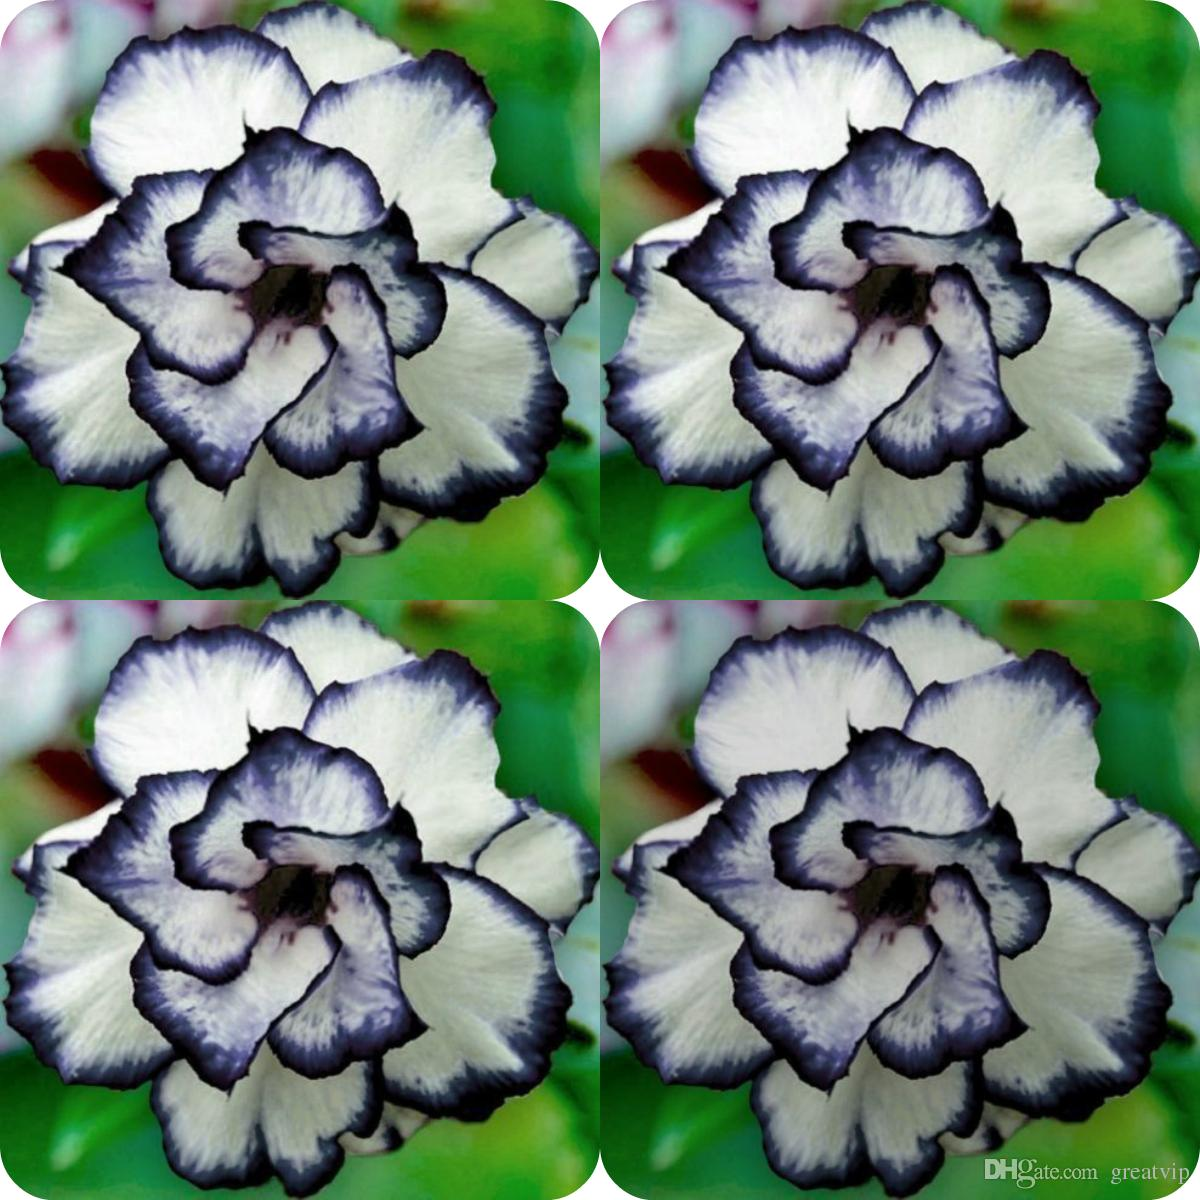 100 Pieces Rare Black White Desert Rose Seeds Adenium Obesum Flower Perennial Exotic Plants Flower Seeds Bloom Balcony Garden Yard